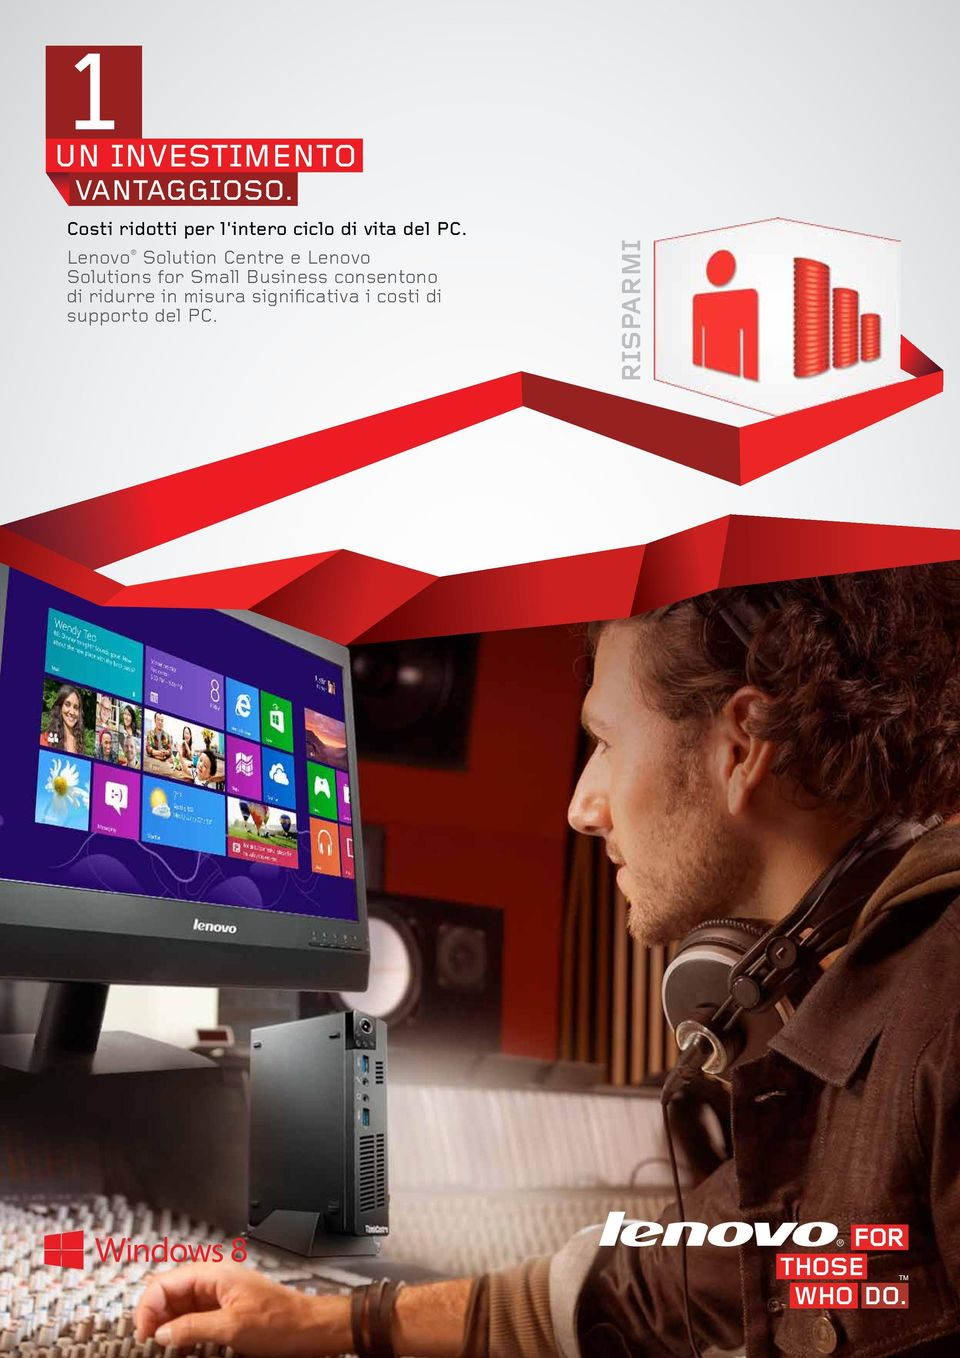 Lenovo Solution Centre e Lenovo Solutions for Small